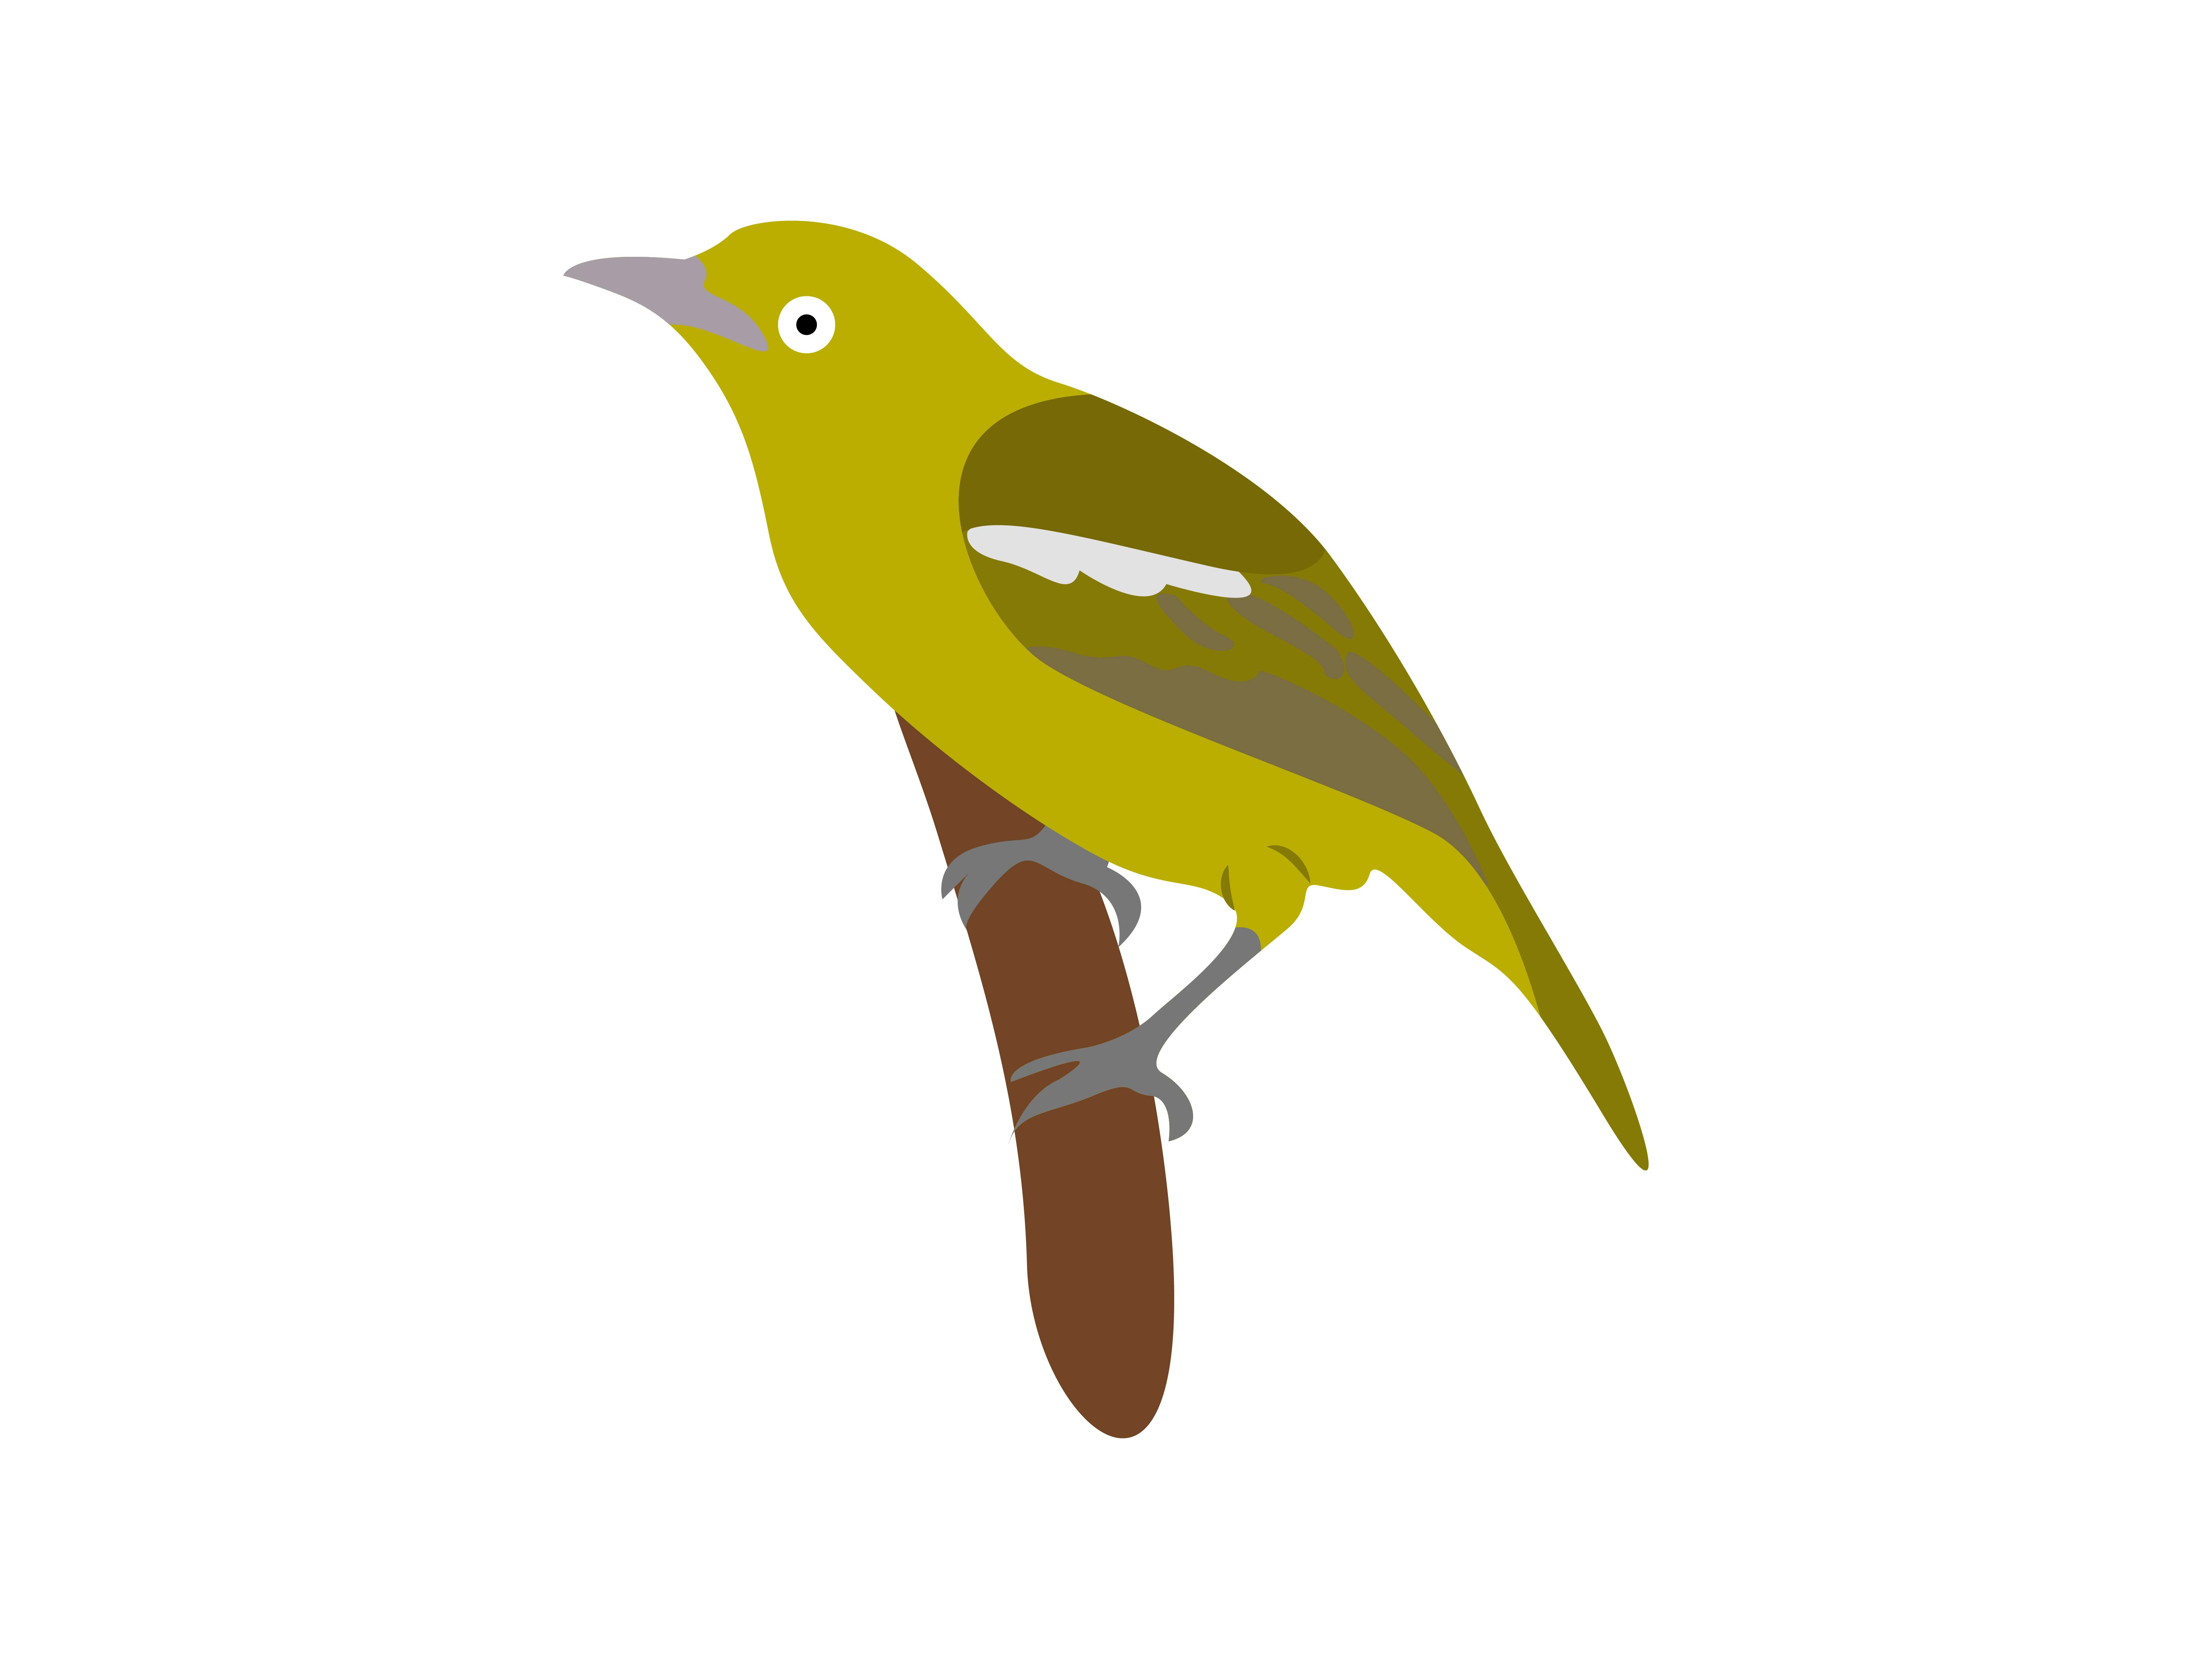 Download Free Green Bird Animal Graphic By Archshape Creative Fabrica for Cricut Explore, Silhouette and other cutting machines.